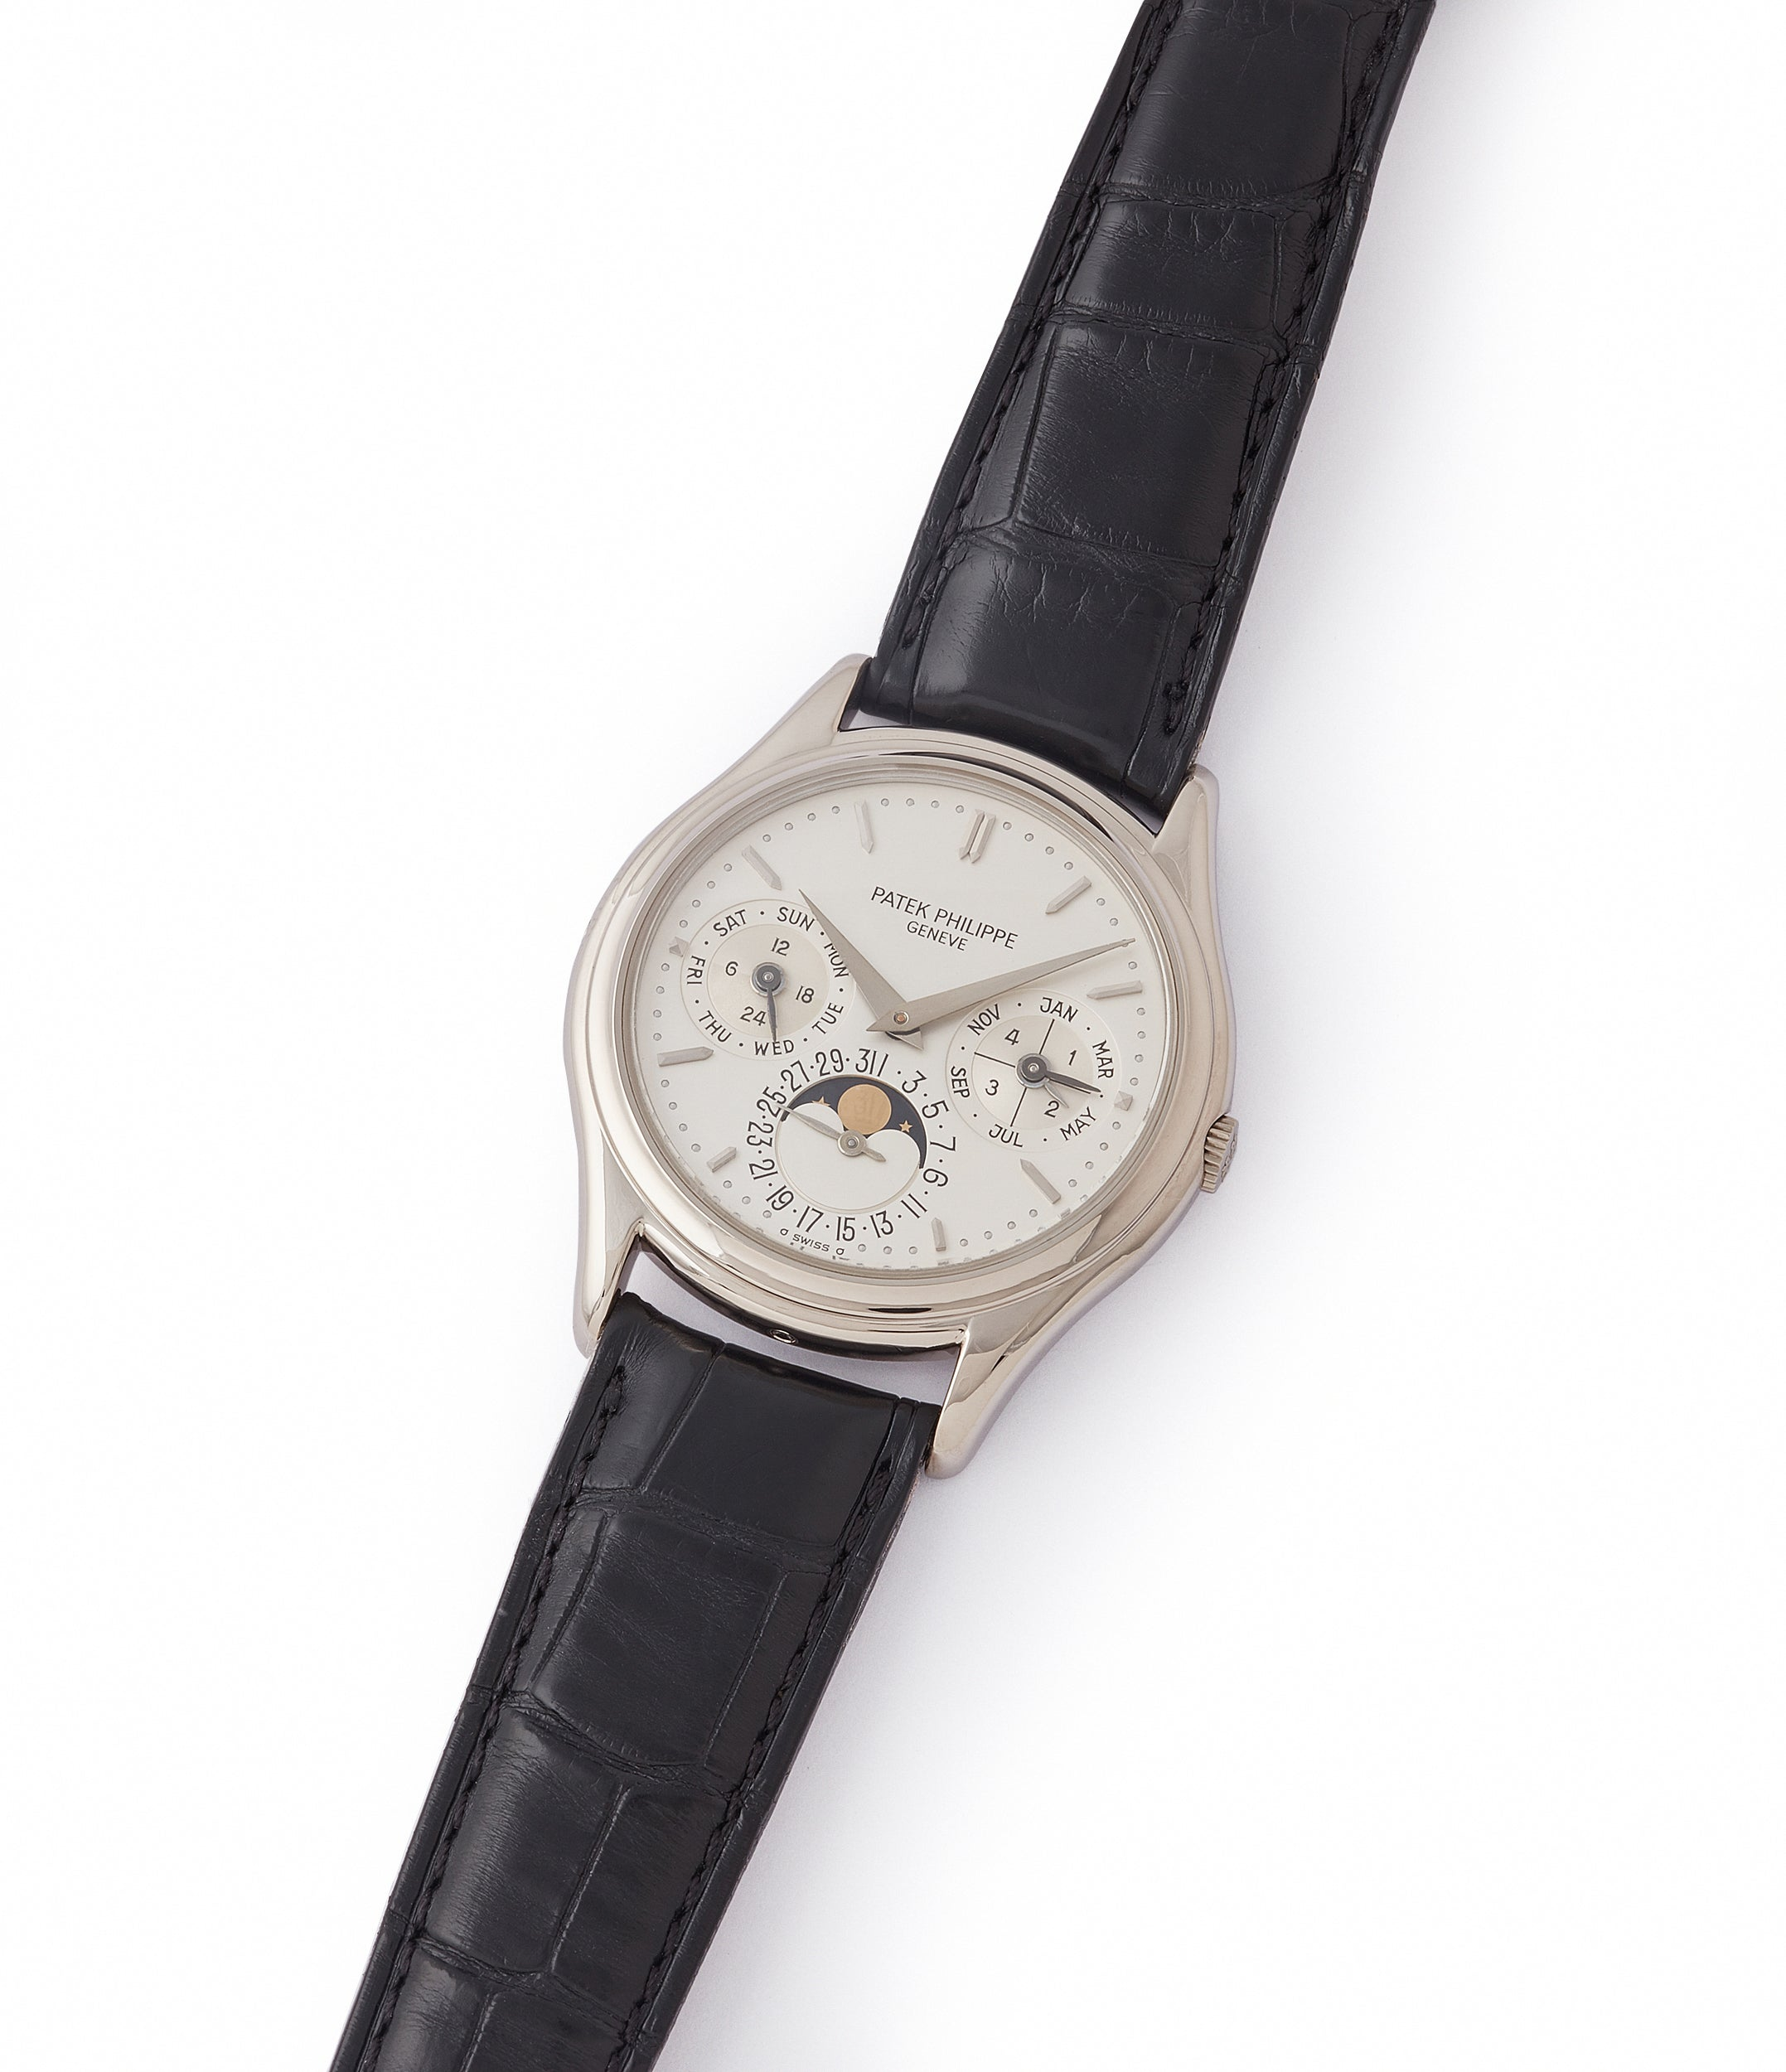 sell Patek Philippe 3940G Perpetual Calendar vintage rare watch English dial for sale online at A Collected Man London UK specialist of rare watches